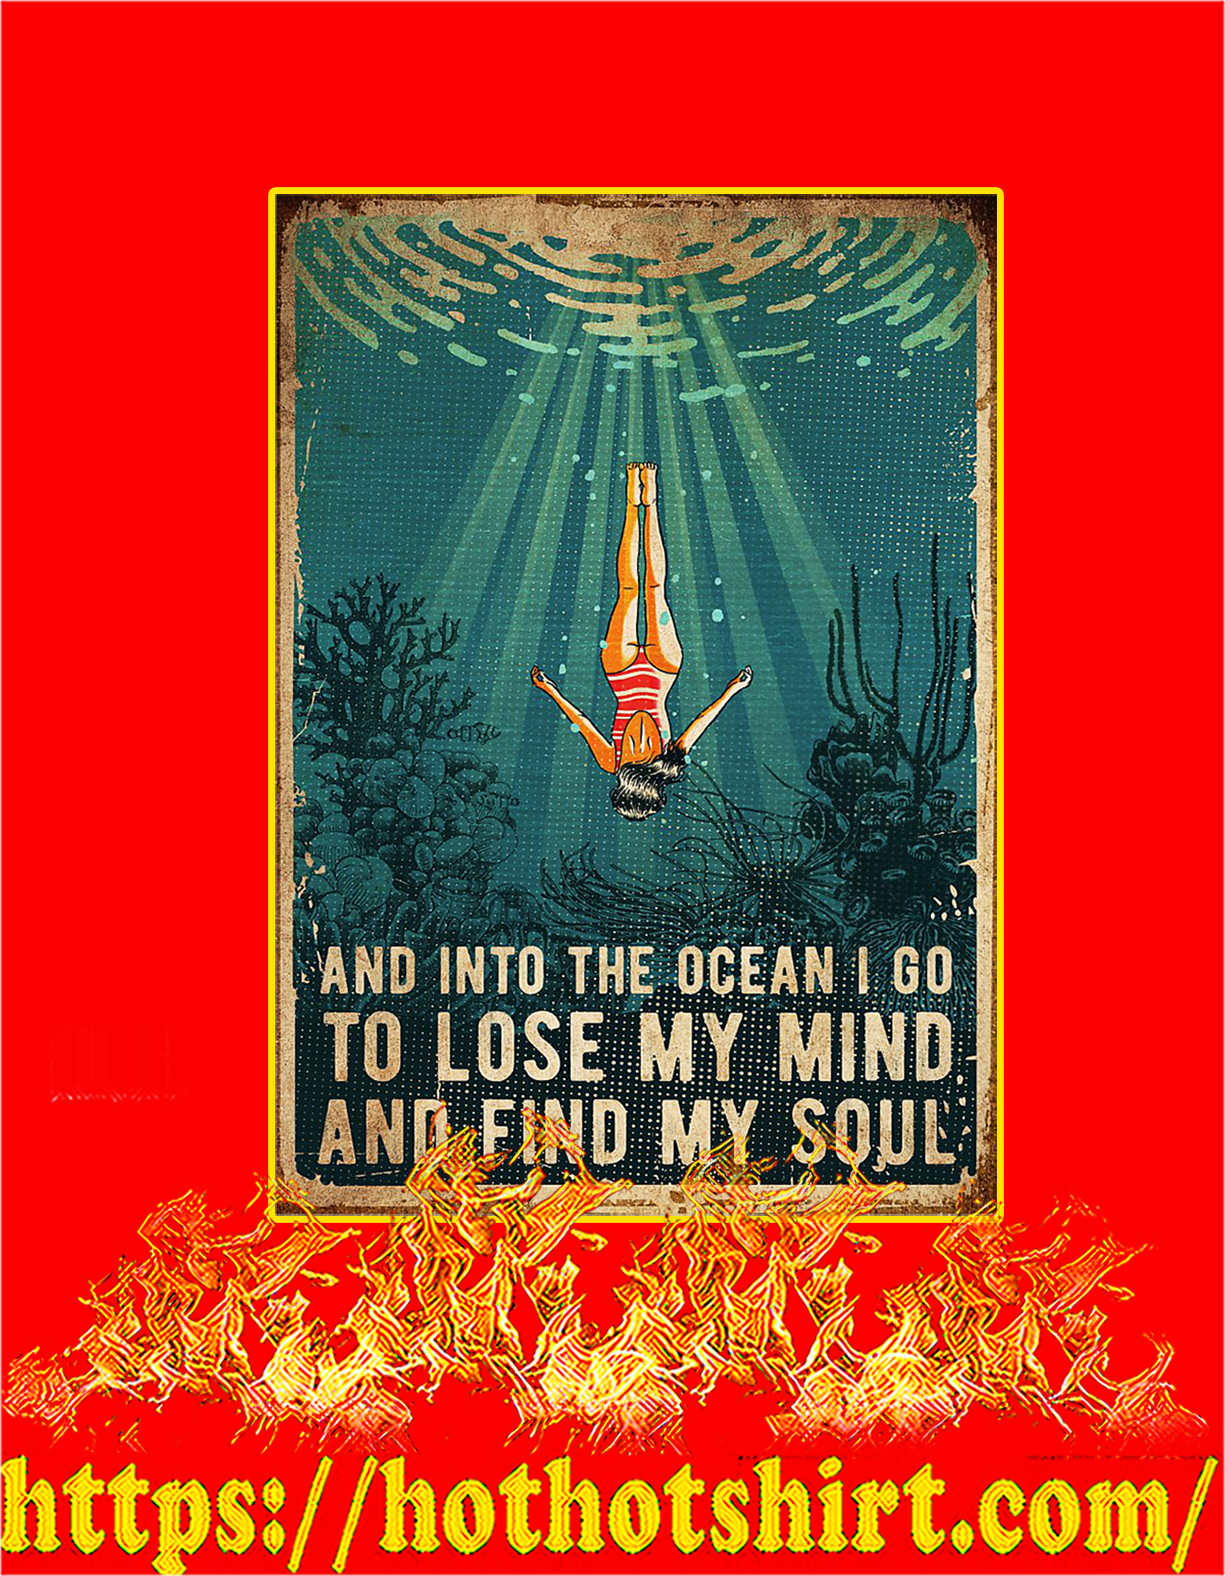 Swimming And into the ocean I go to lose my mind and find my soul poster - A2